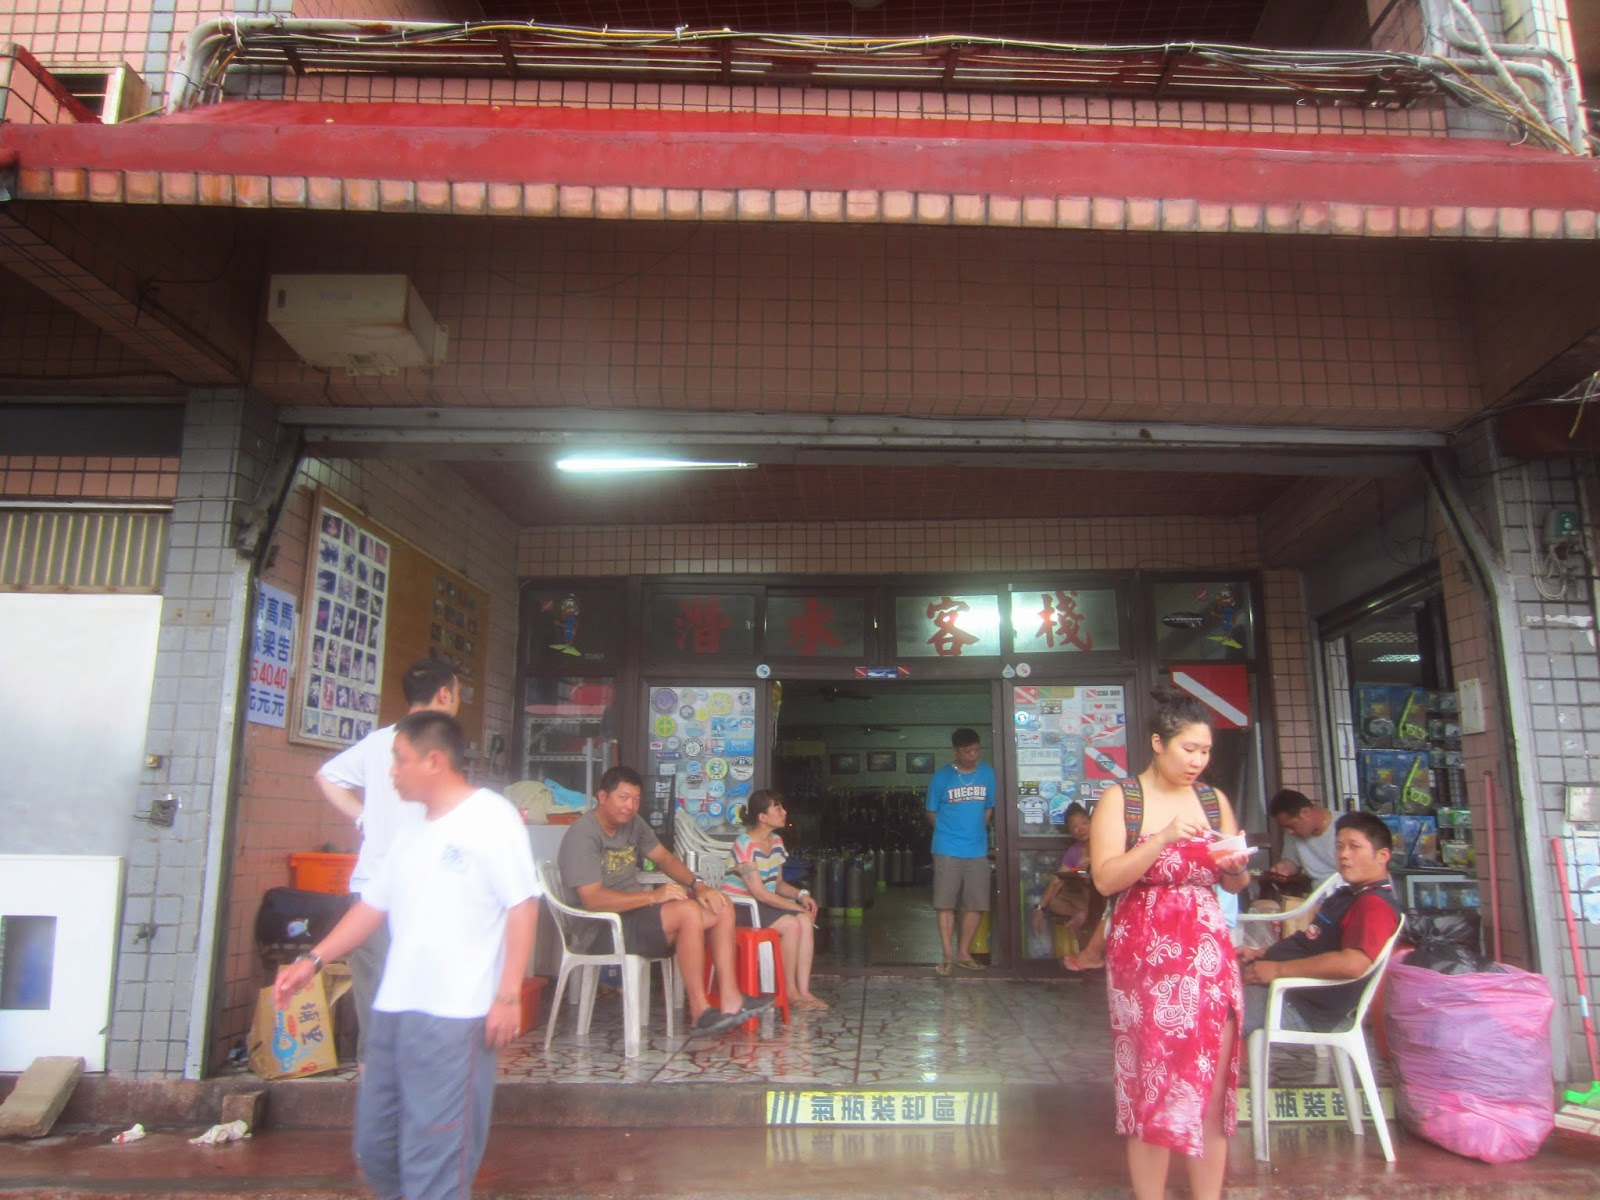 The best snorkel rental shop in Long Dong, featuring cheap prices and free showers.